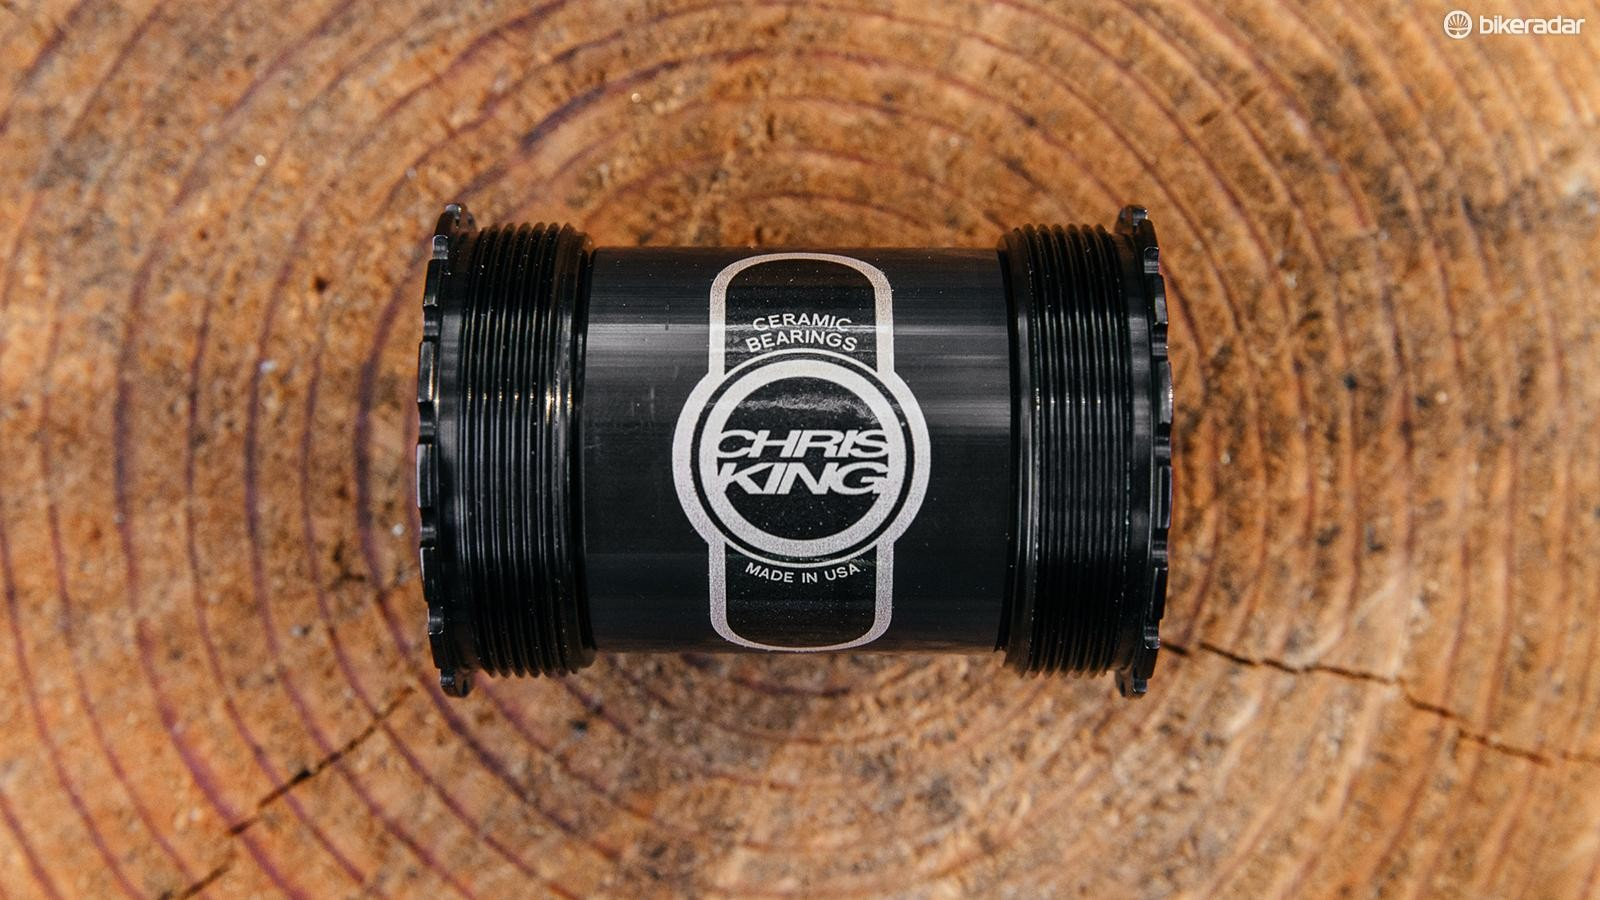 The Chris King Thread Fit 30i bottom bracket works with cranks with 30mm diameter spindles, adapters will be offered for 24mm cranks